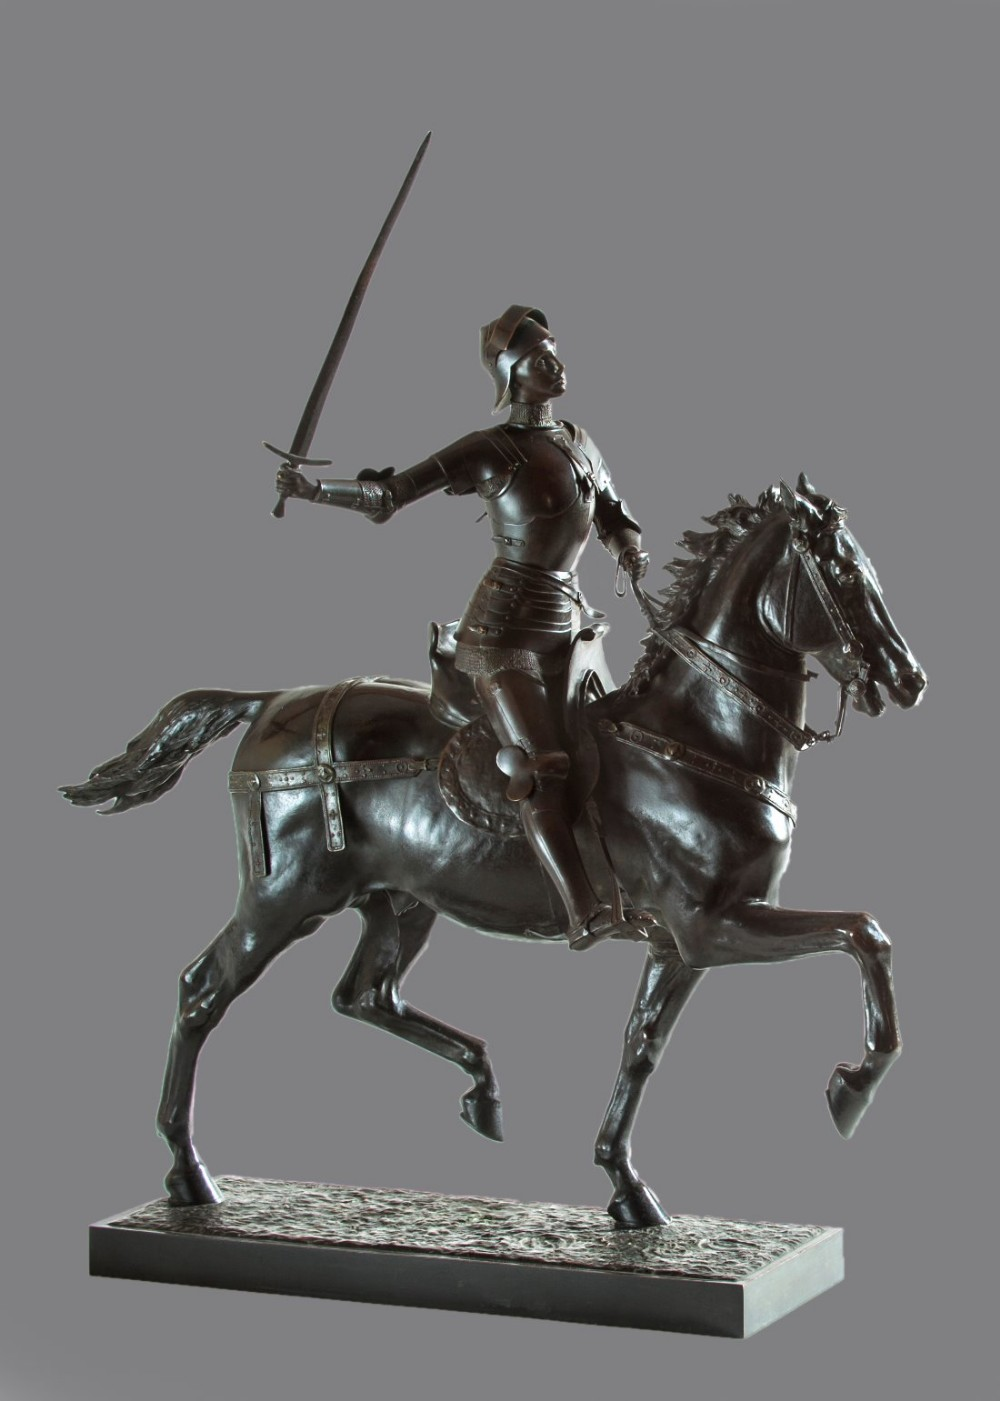 stunning french bronze sculpture of jeanne d' arc by paul dubois